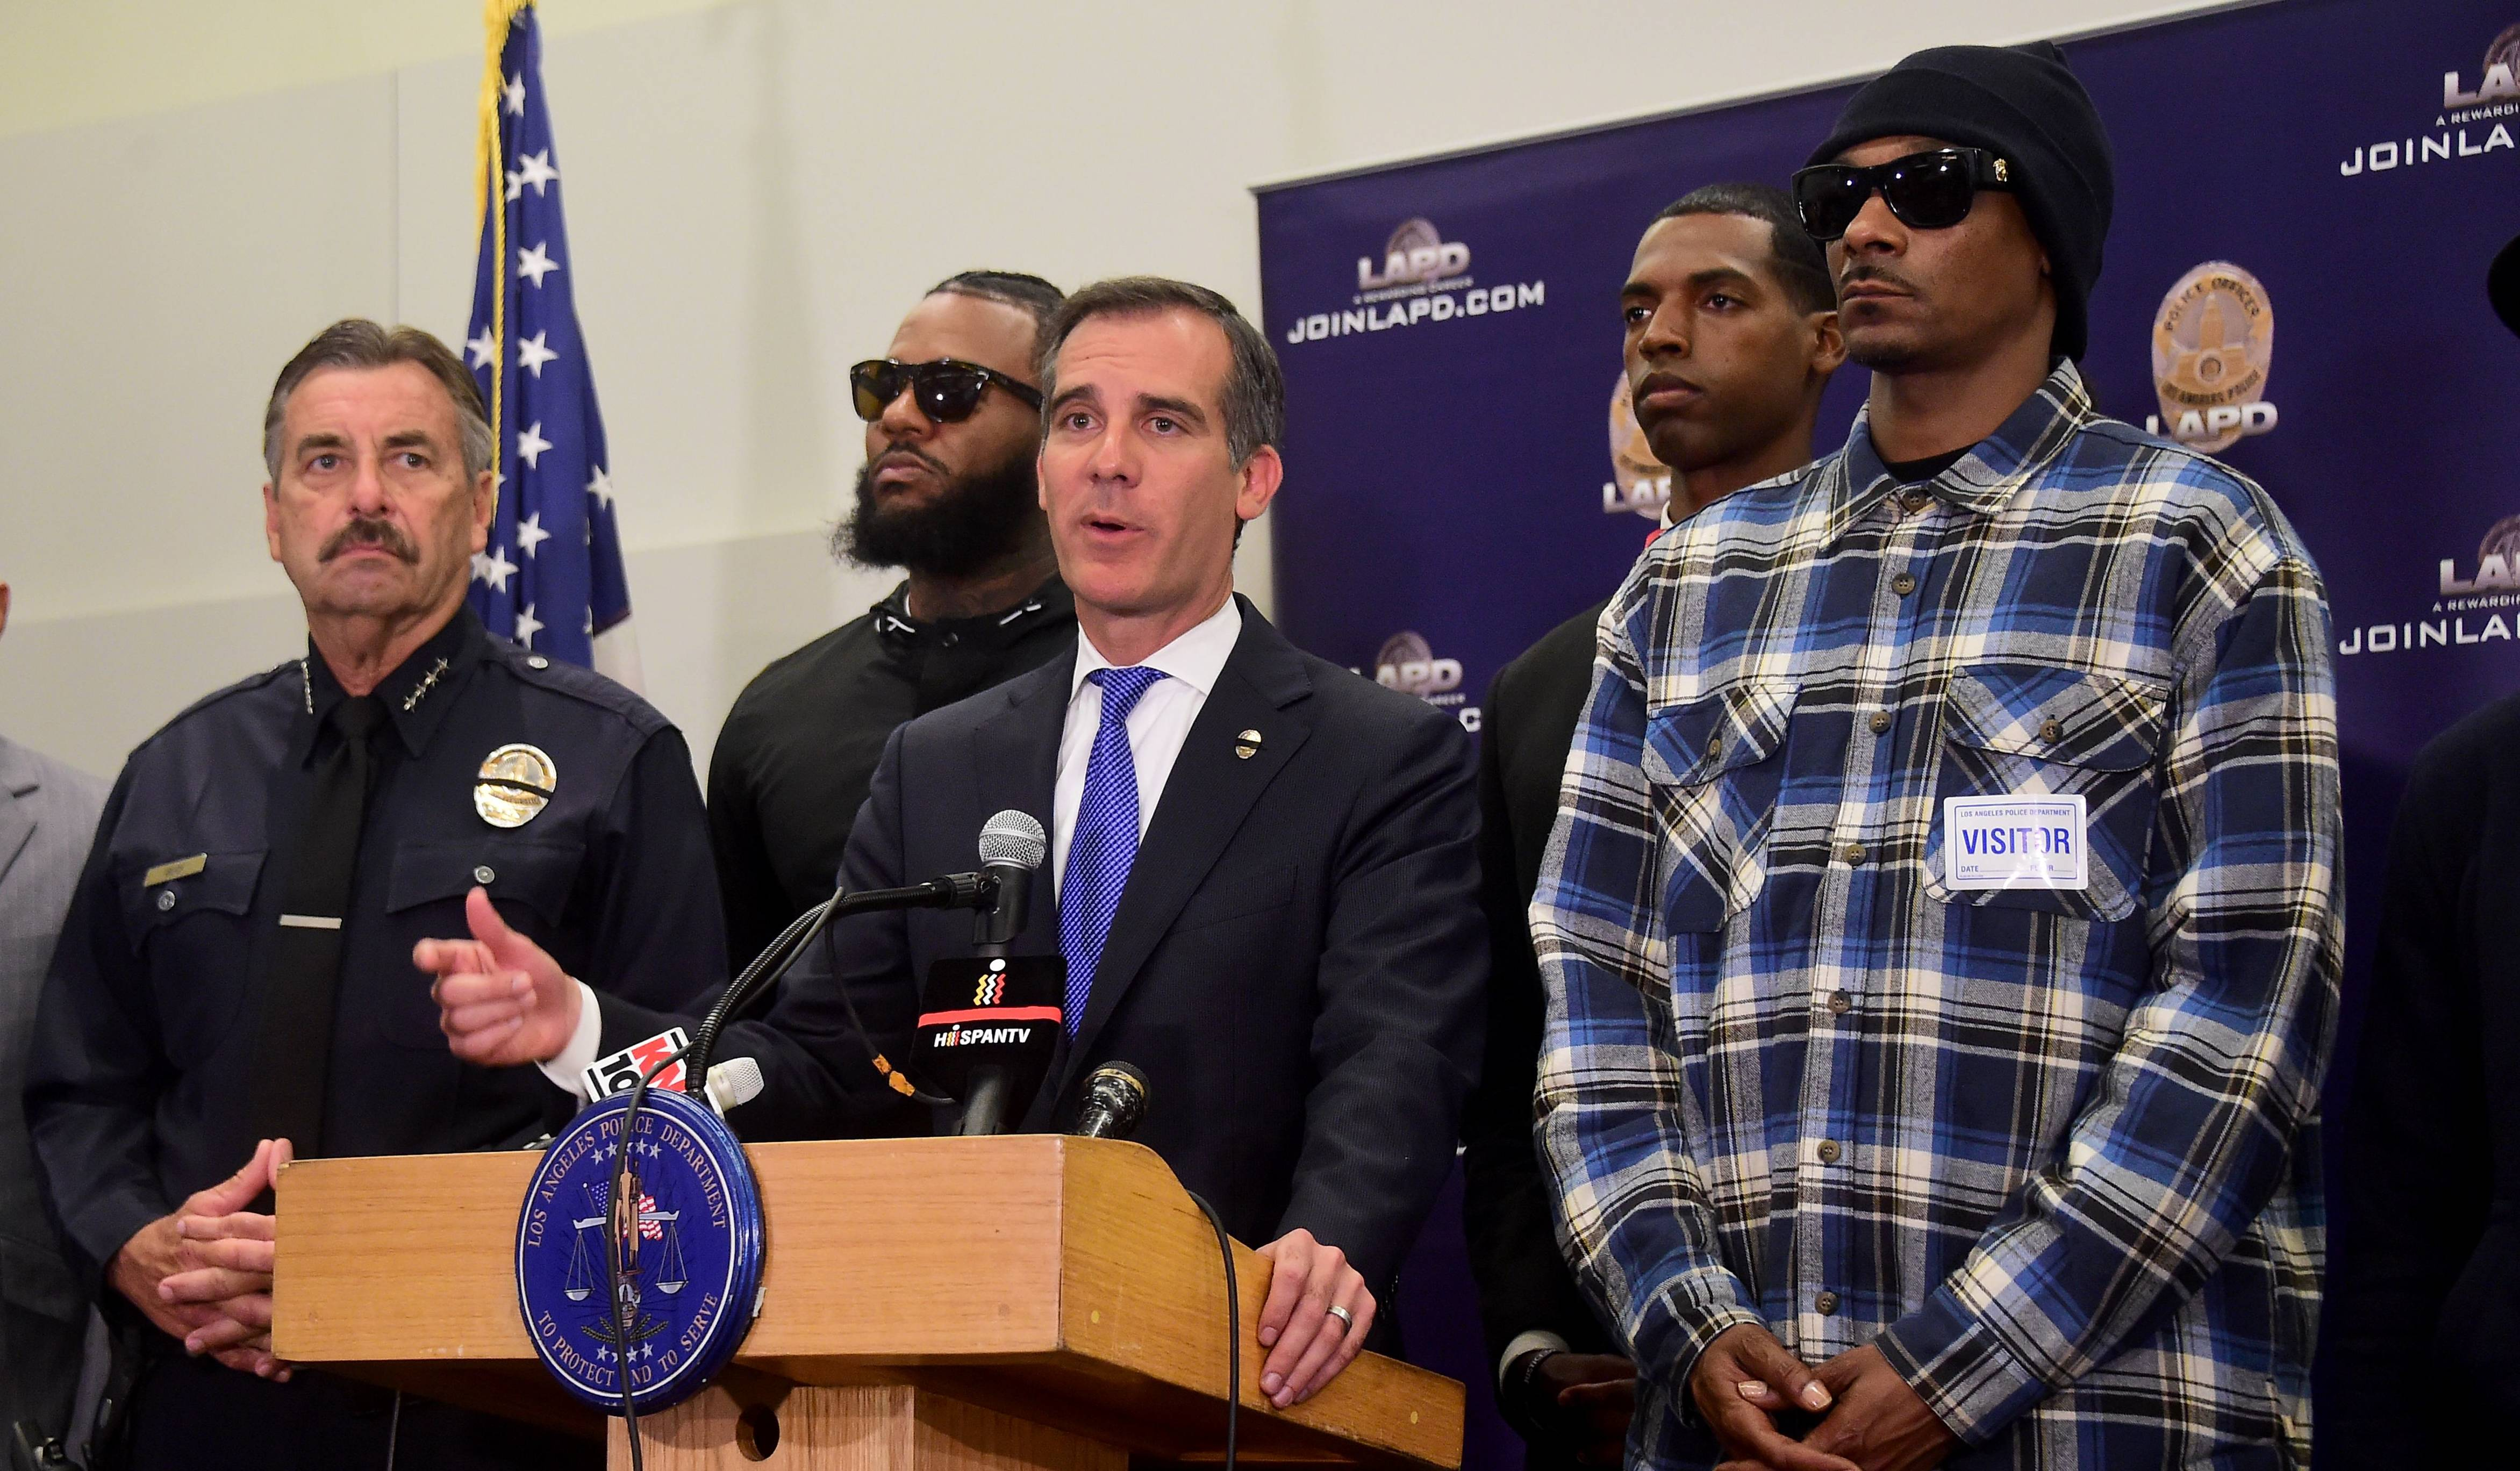 Los Angeles mayor Eric Garcetti addresses the media with police chief Charlie Beck (L) and rappers The Game (2/L) and Snoop Dogg (R) at LAPD headquarters on July 8, 2016, after Snoop Dogg and fellow rapper The Game led a peaceful demonstration outside a Los Angeles Police Department recruit graduation ceremony in what they called an effort to promote unity in the aftermath of the deadly shootings of police officers in Dallas.